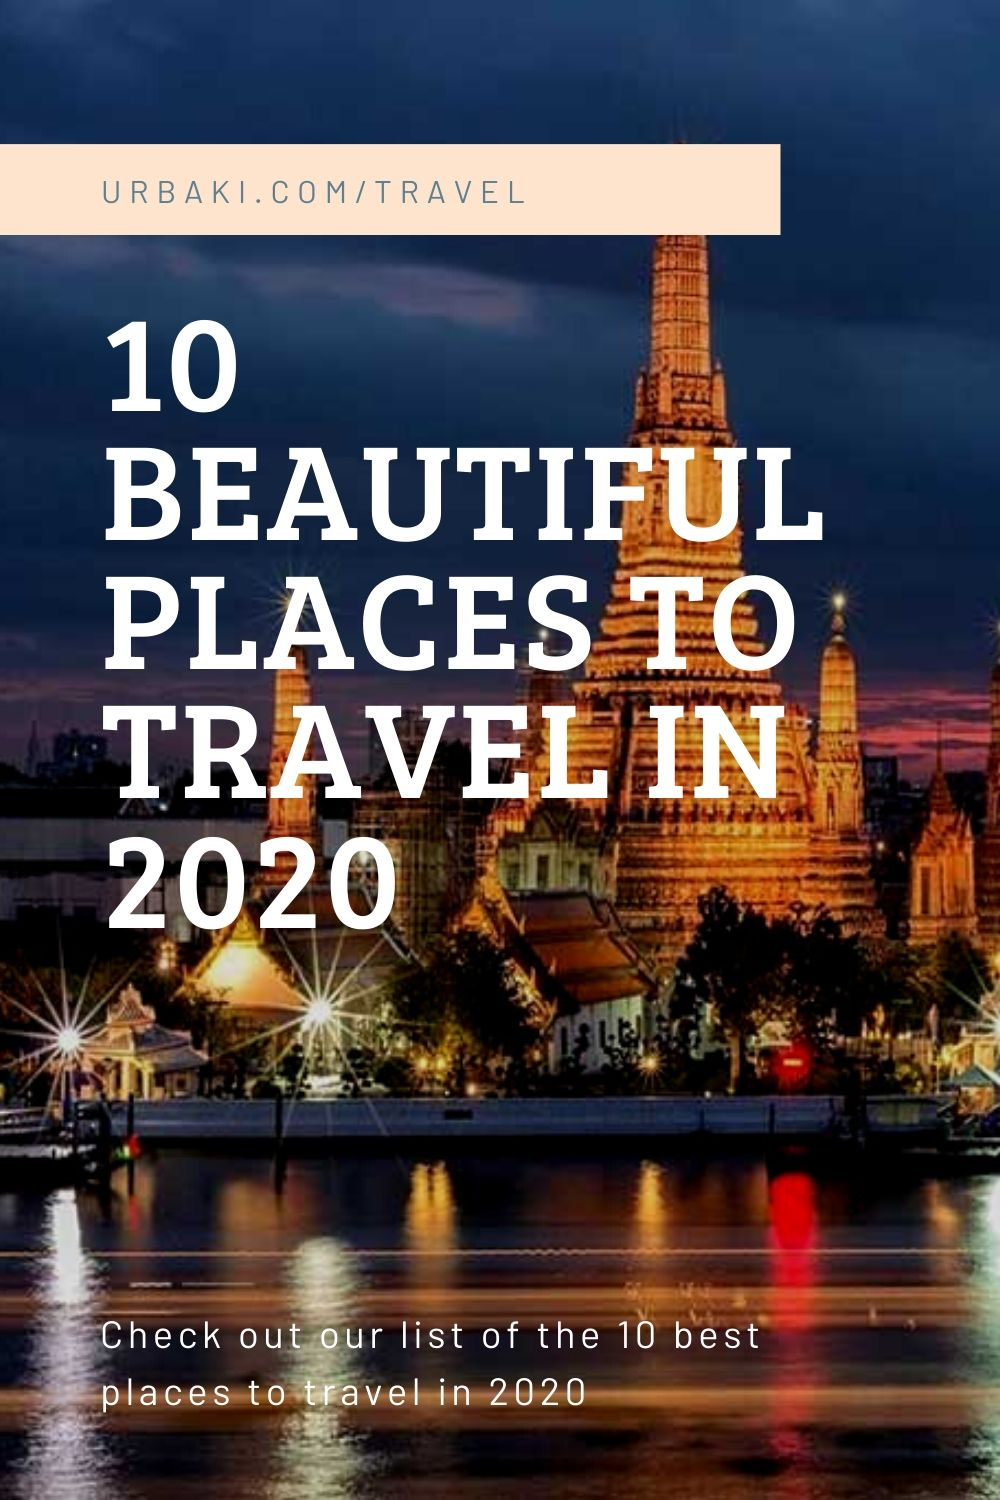 10 Beautiful Places to Travel in 2020